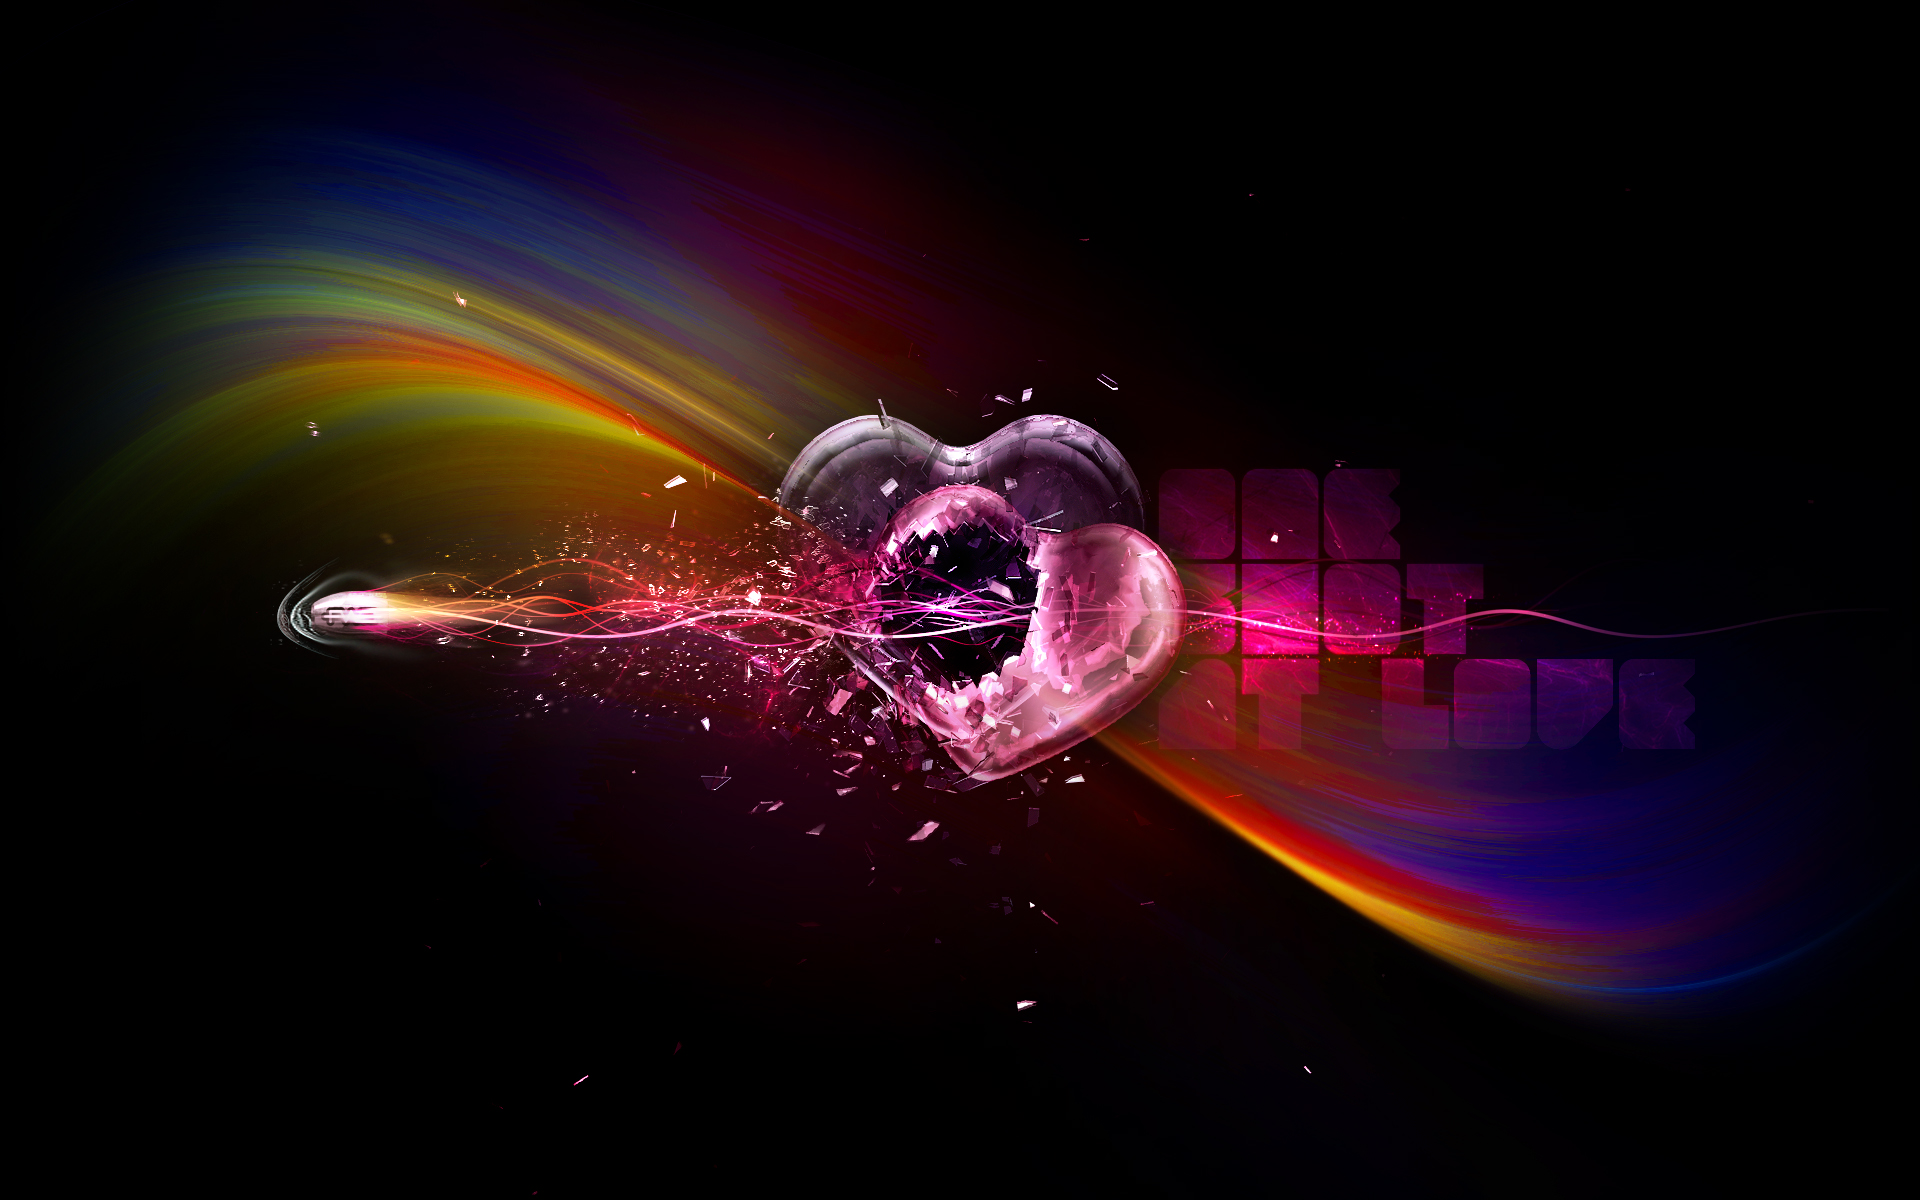 Broken heart wallpaper 1920x1200